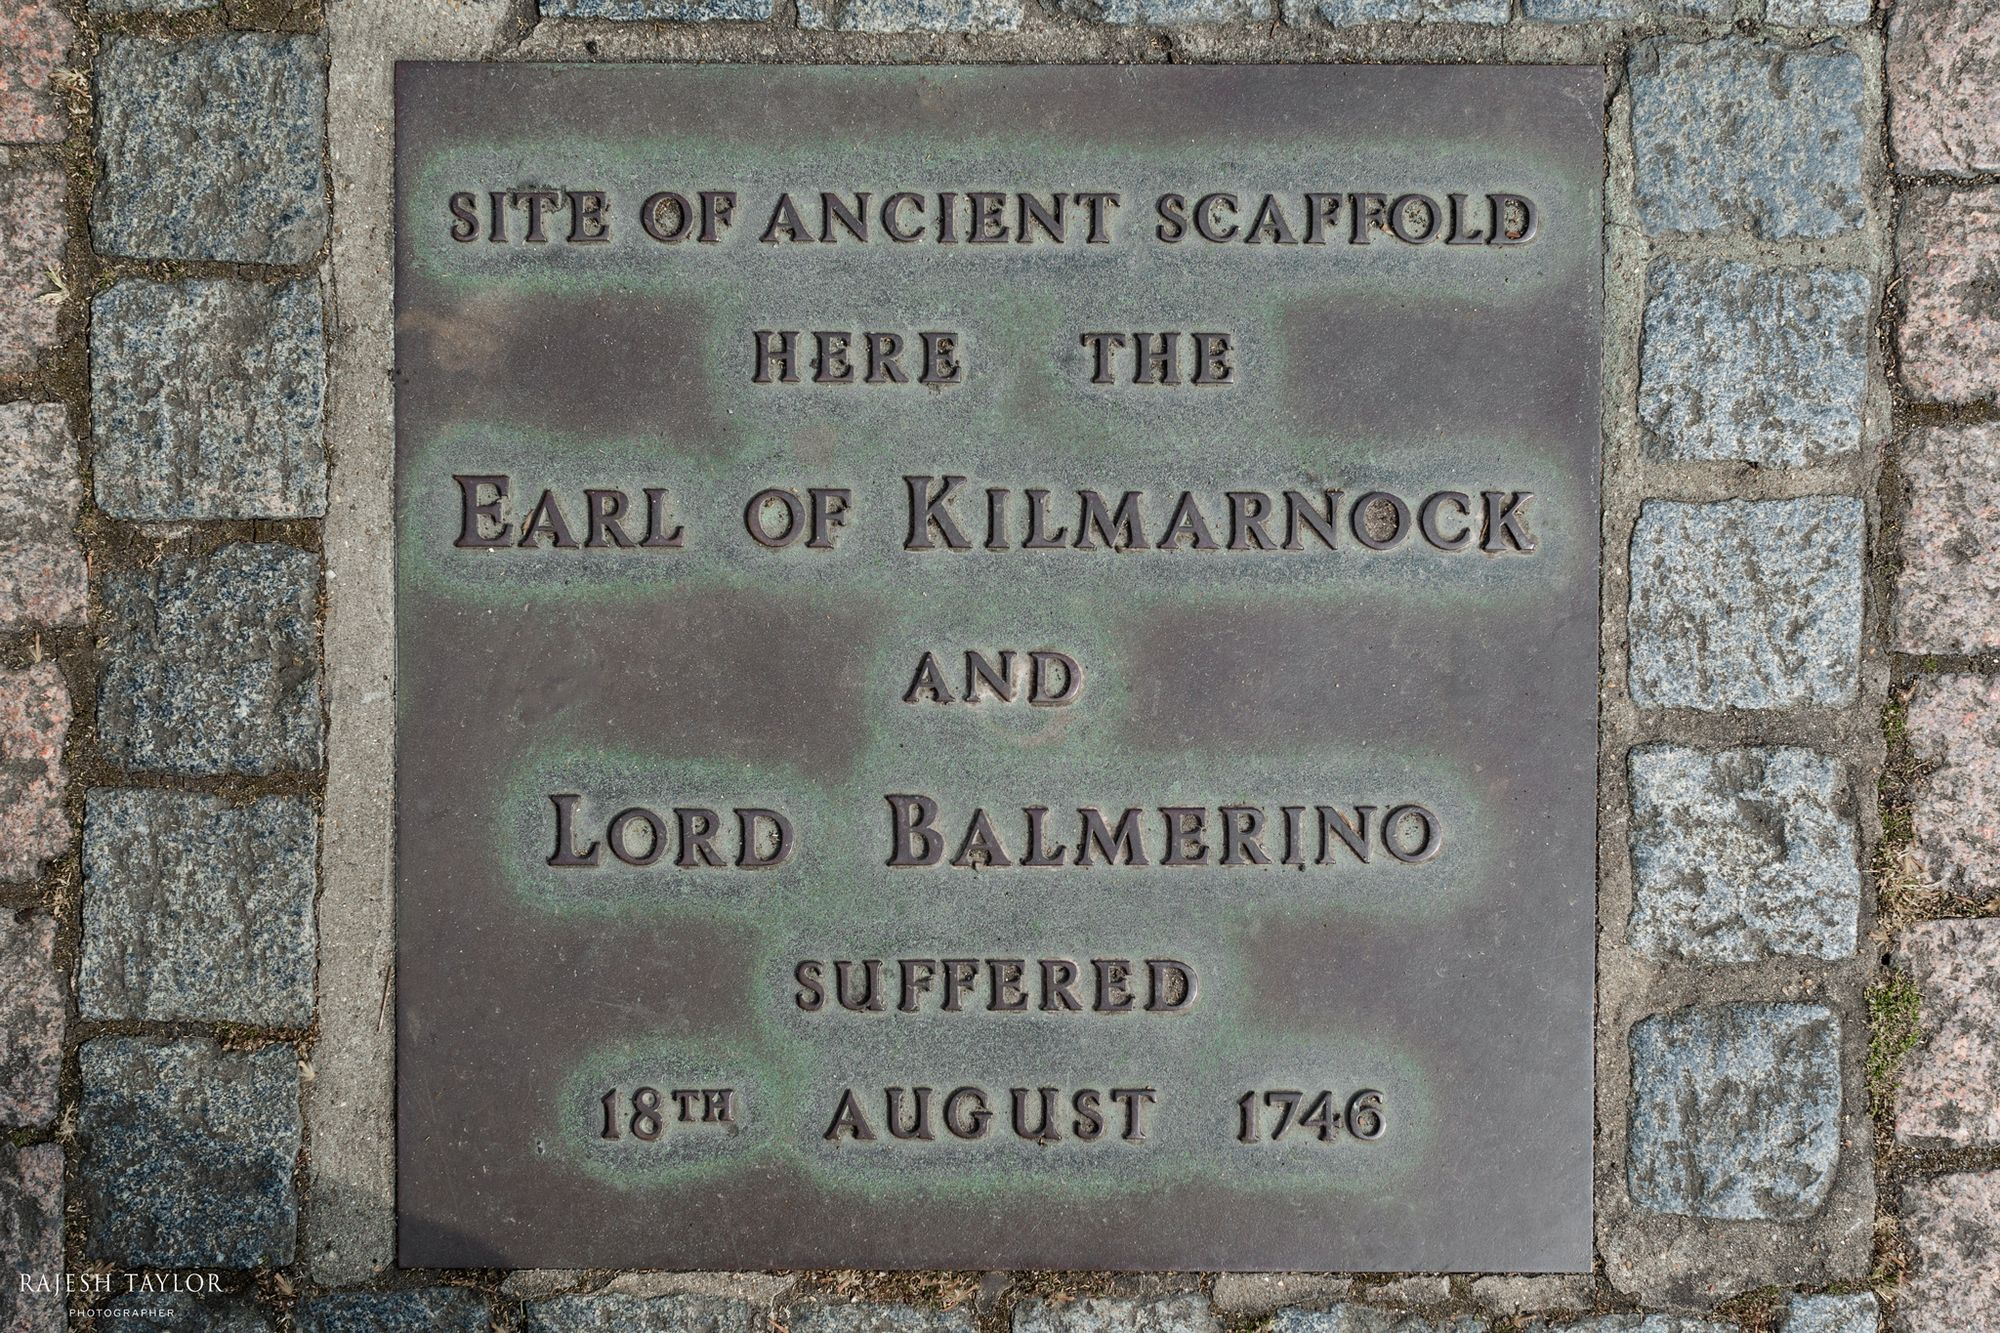 Memorial to Earl Kilmarnock and Lord Balmerino at Site of the Scaffold, Tower Hill © Rajesh Taylor